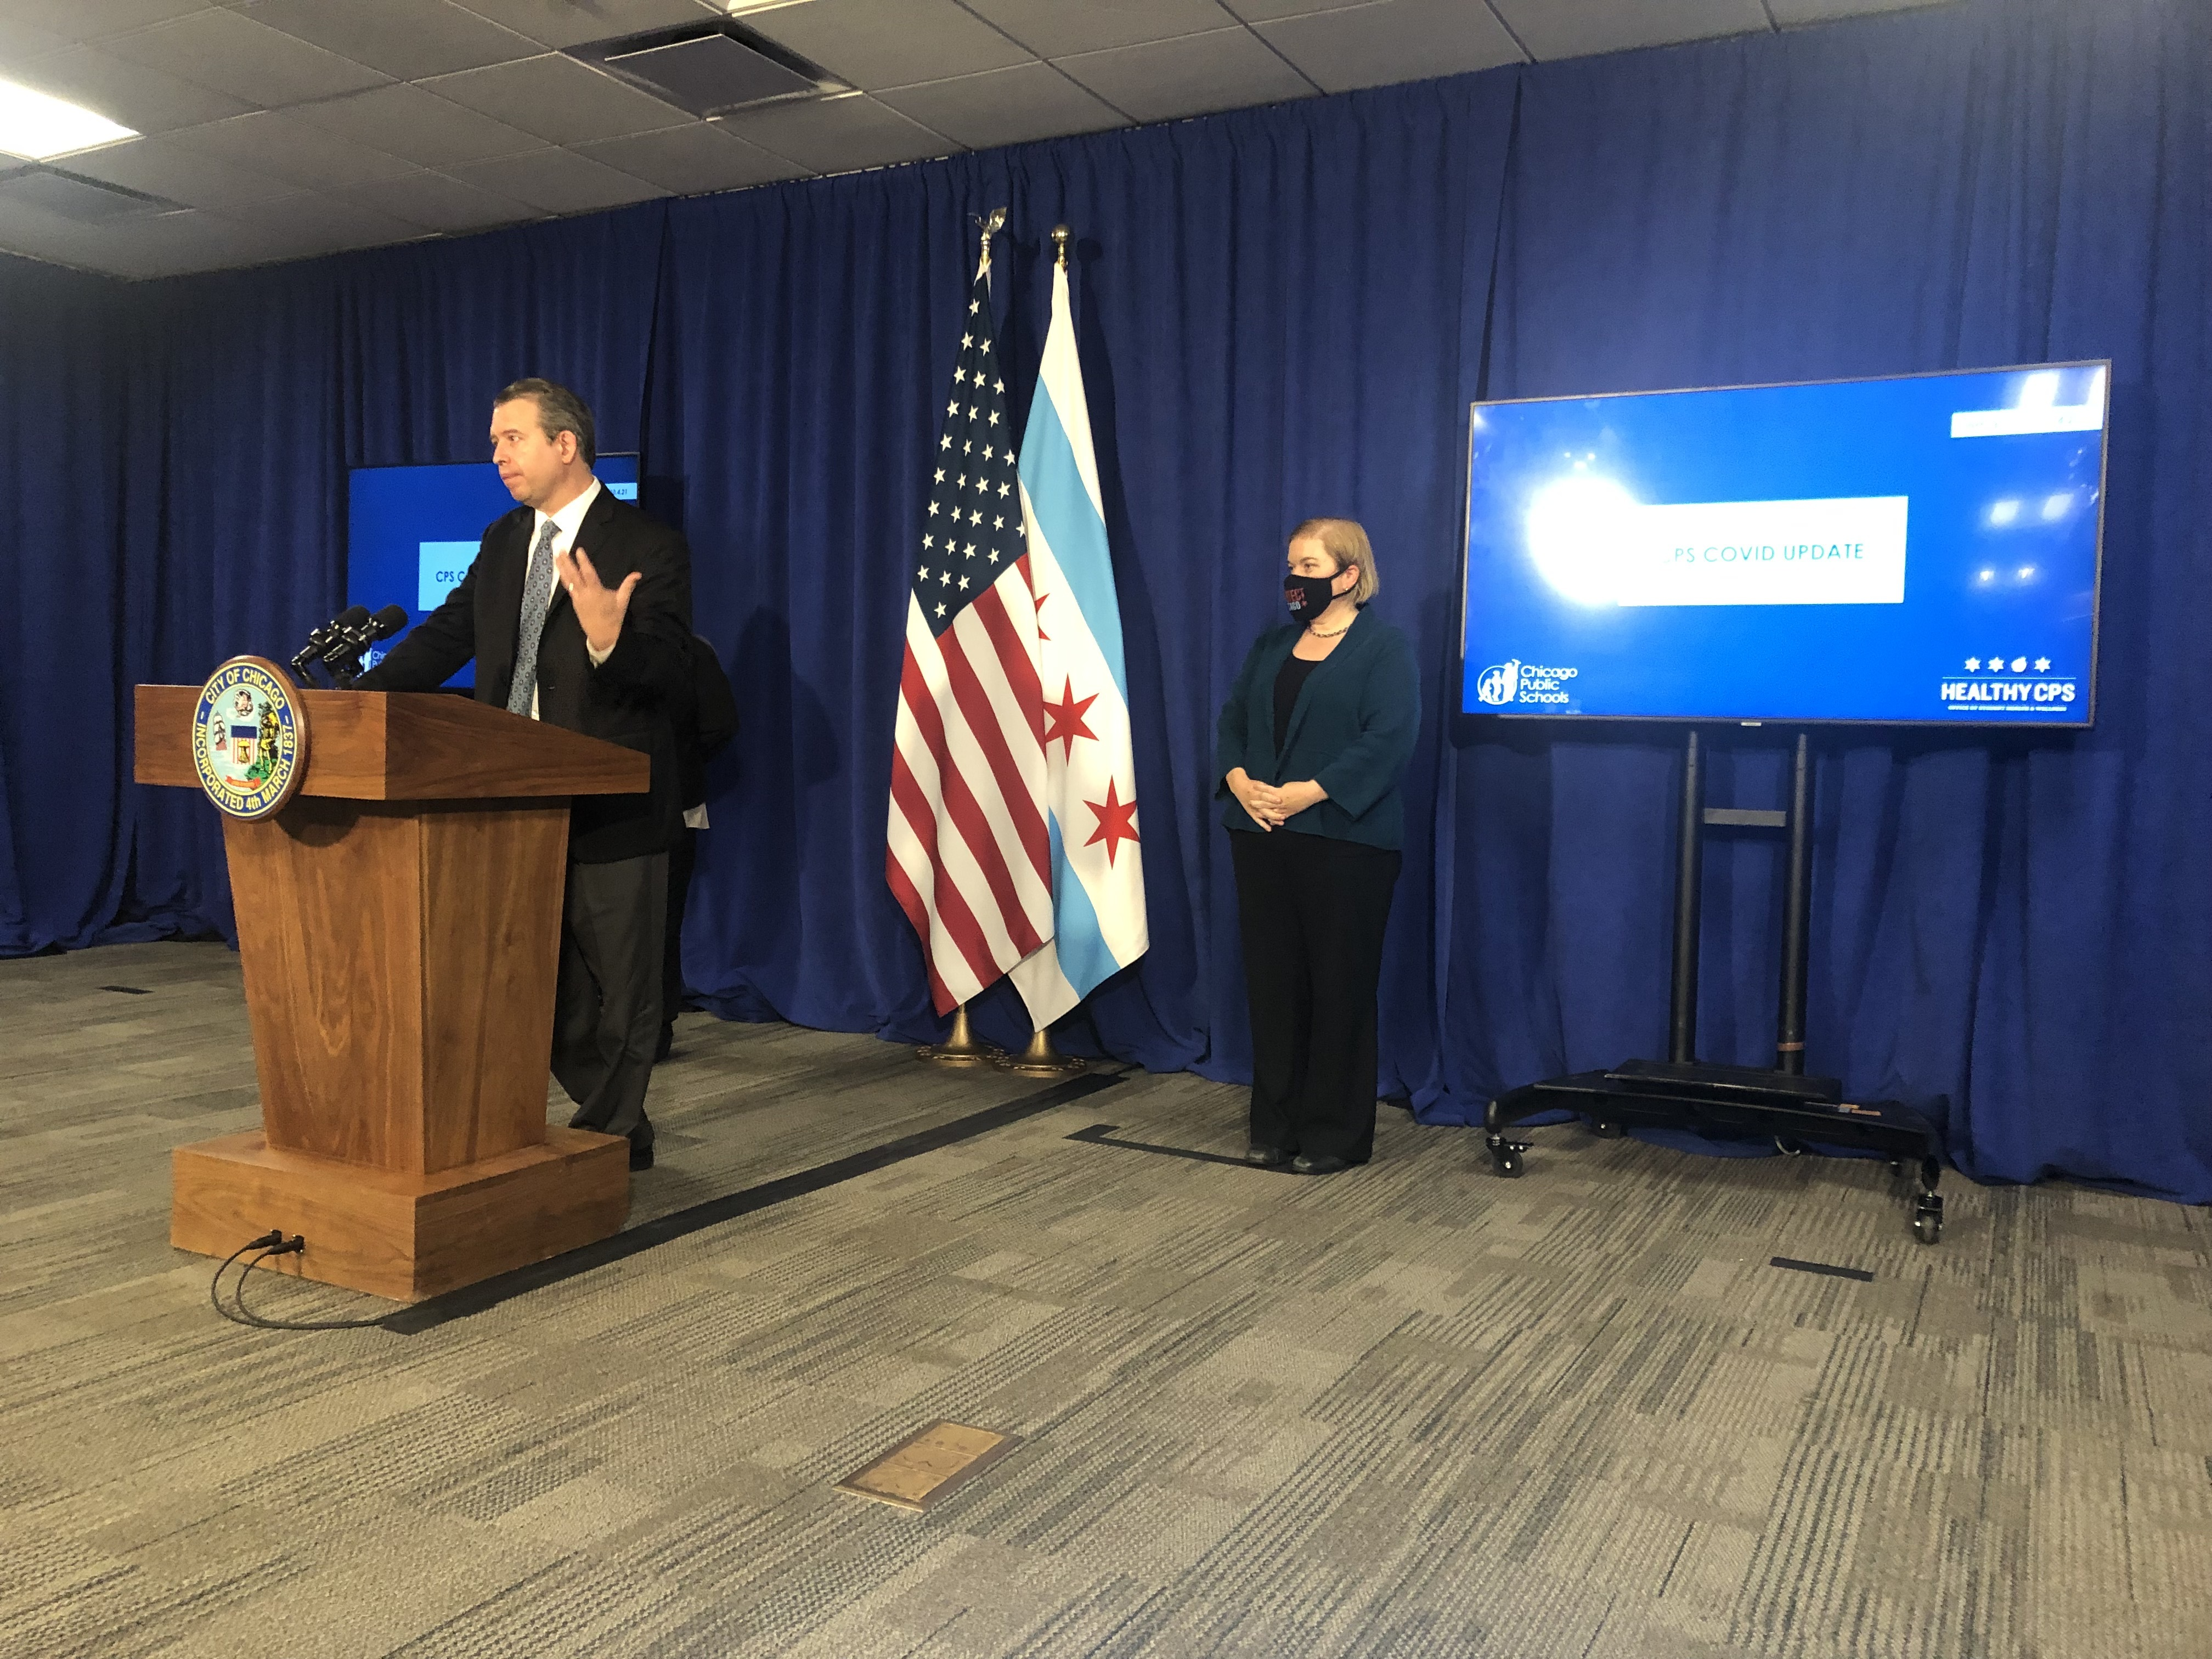 Standing at a podium in a suit and tie, Chicago Public Schools CEO Pedro Martinez explains the new quarantine rules alongside Dr. Allison Arwady, the city's top health official.